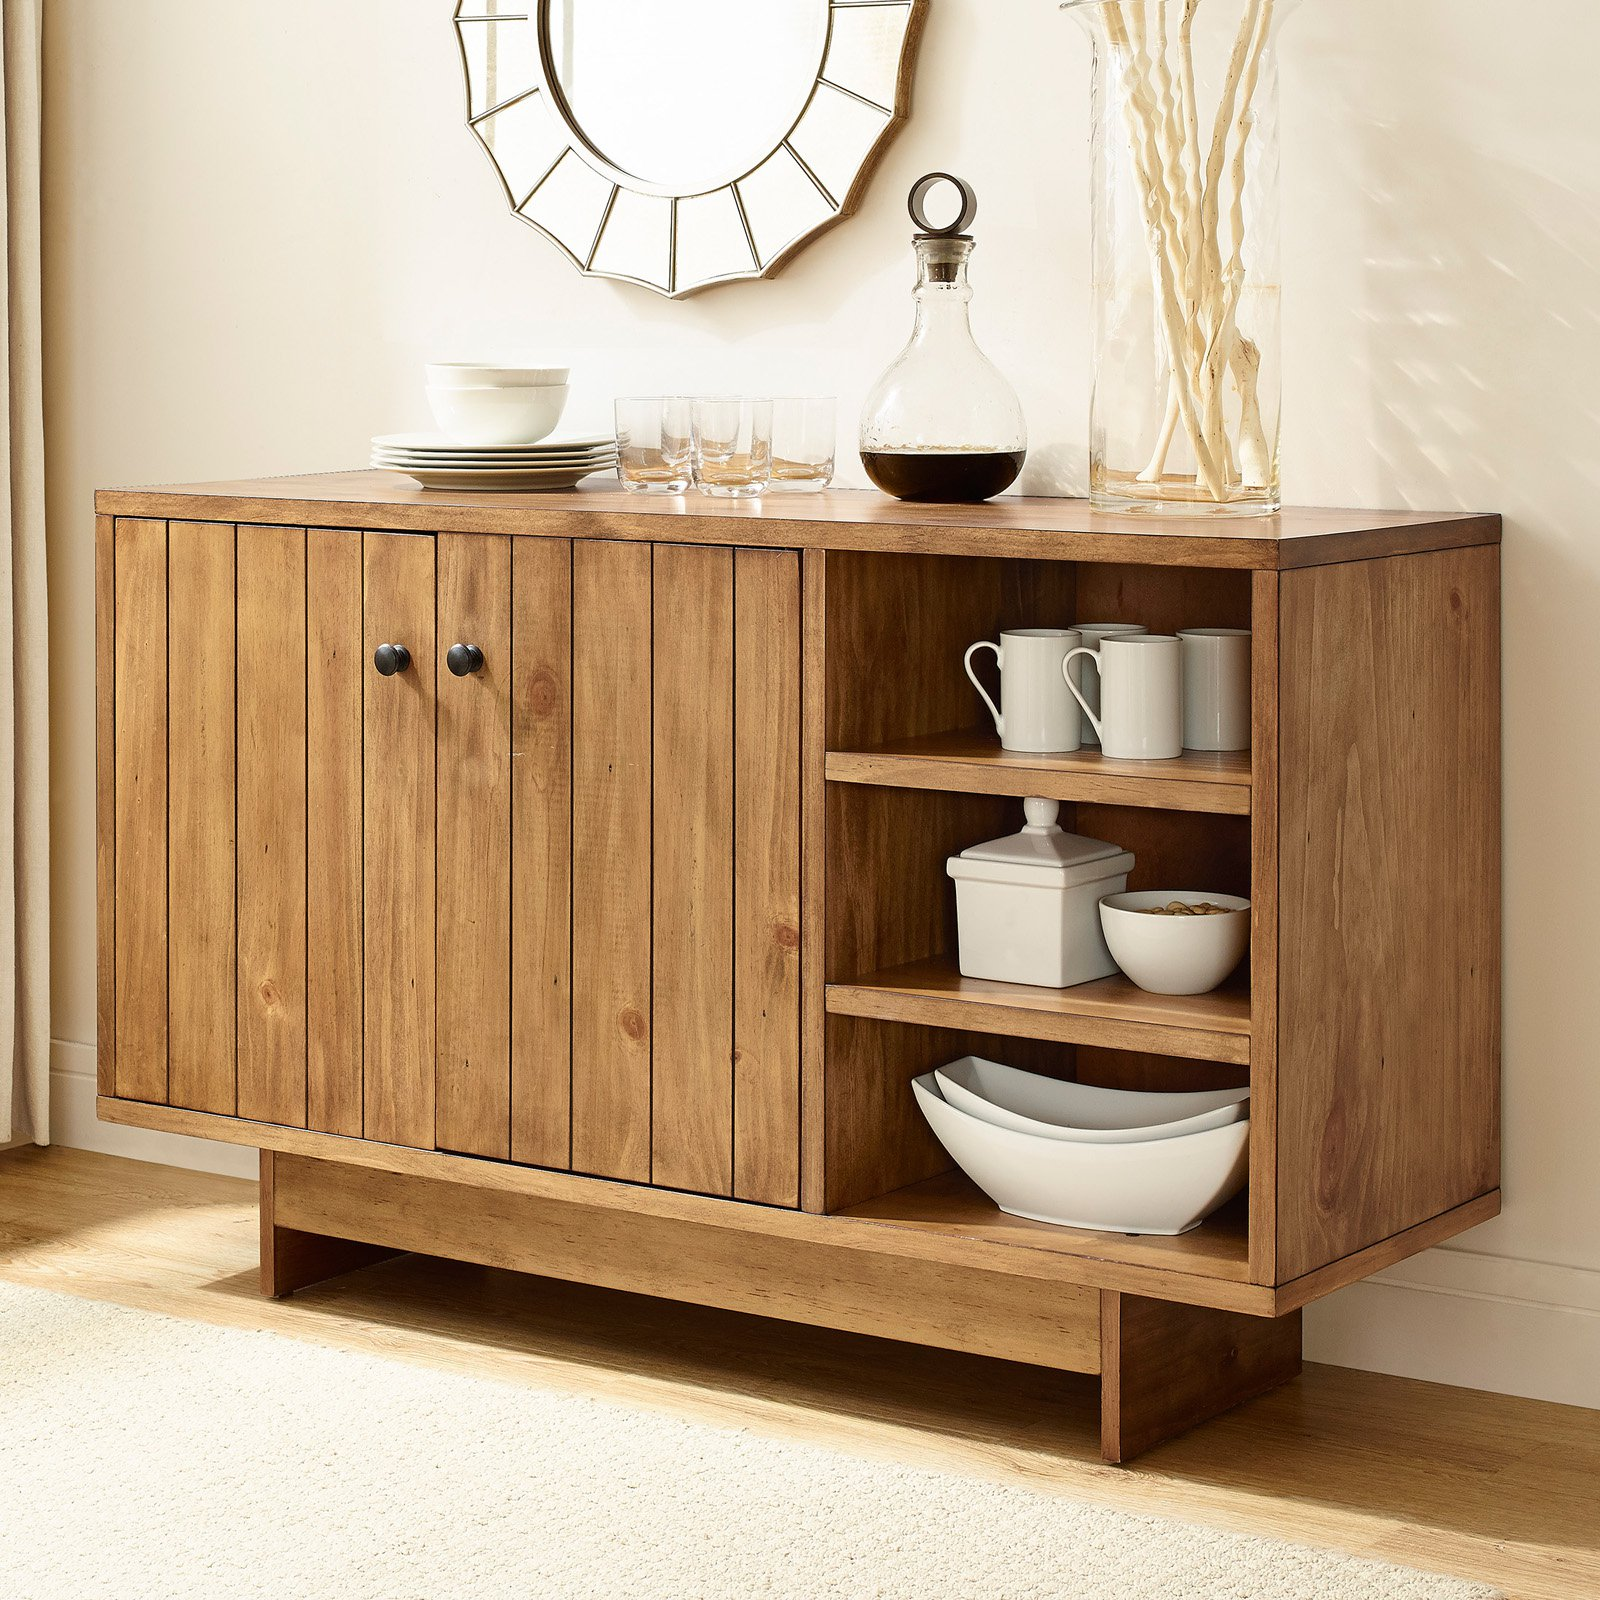 Crosley Furniture Roots Sideboard, Natural by Crosley Brands, Inc